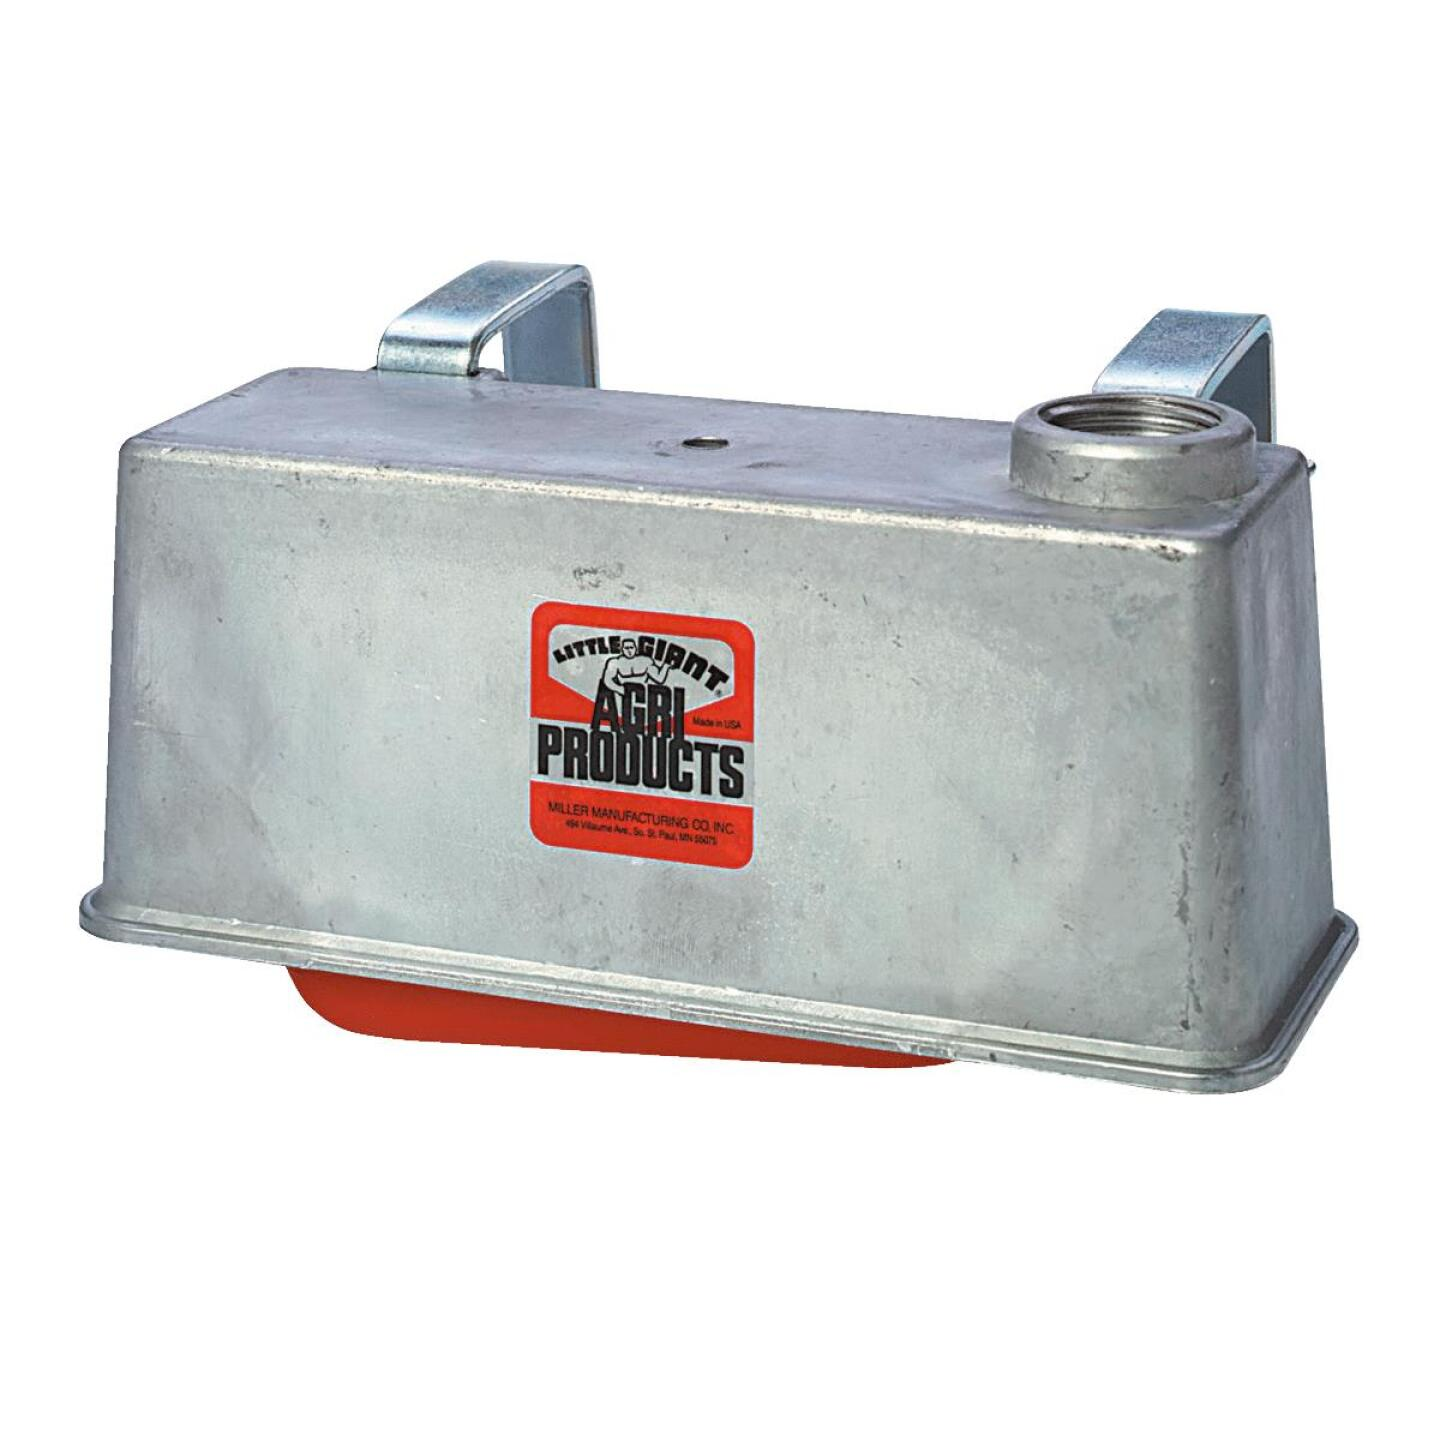 Little Giant Trough-O-Matic 375 GPH Aluminum Automatic Float Valve Image 1